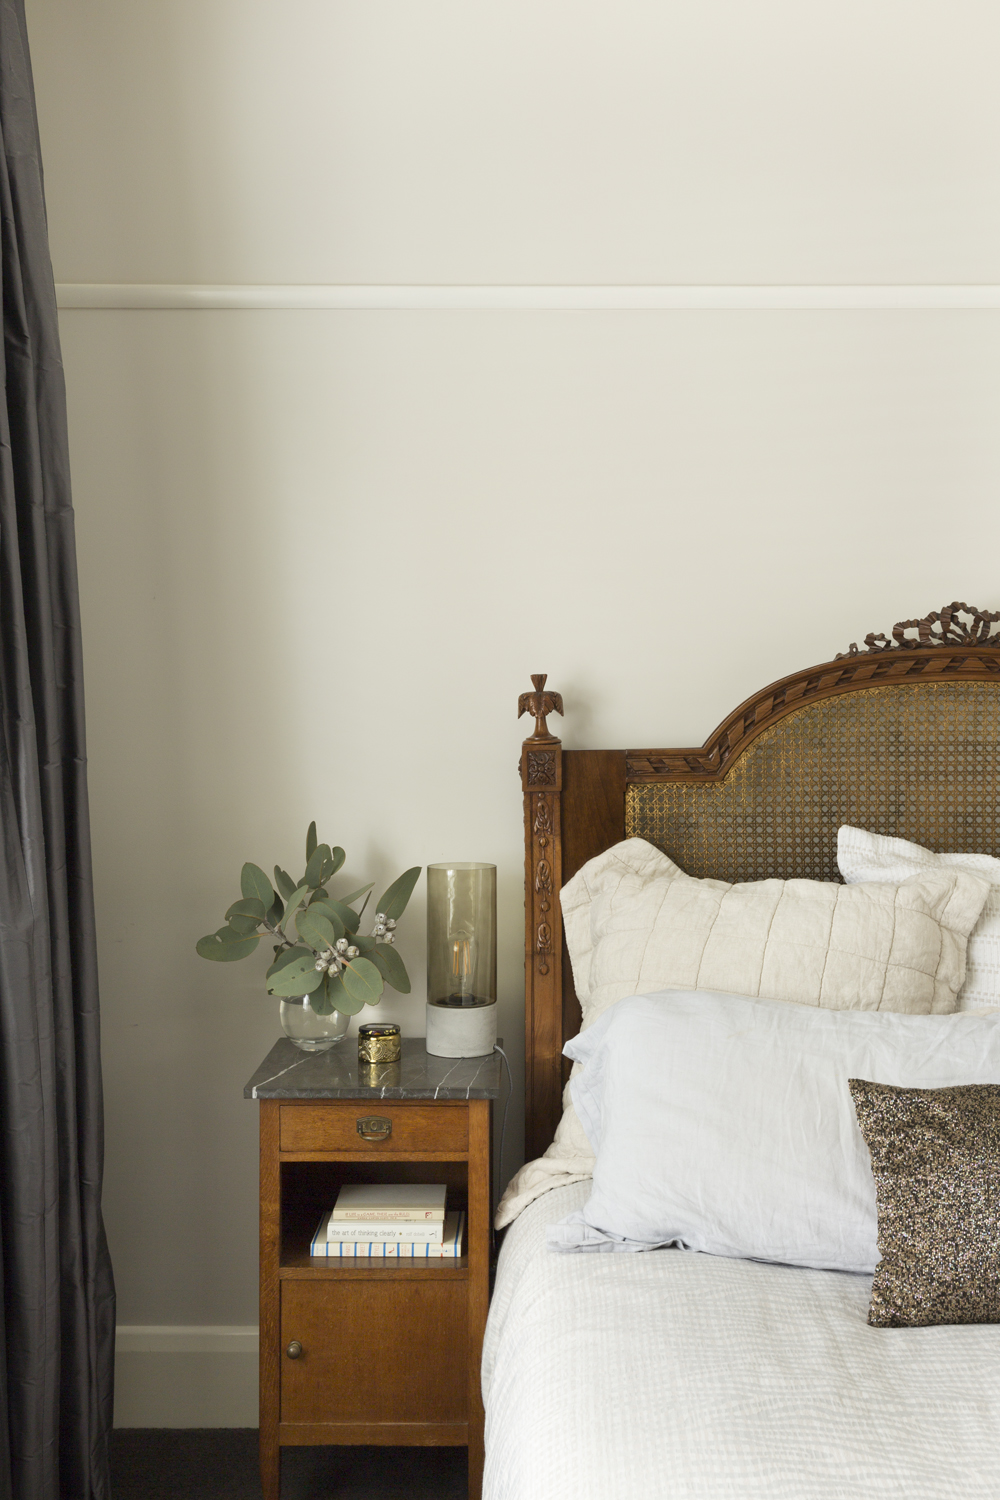 Bedroom design ideas Melbourne